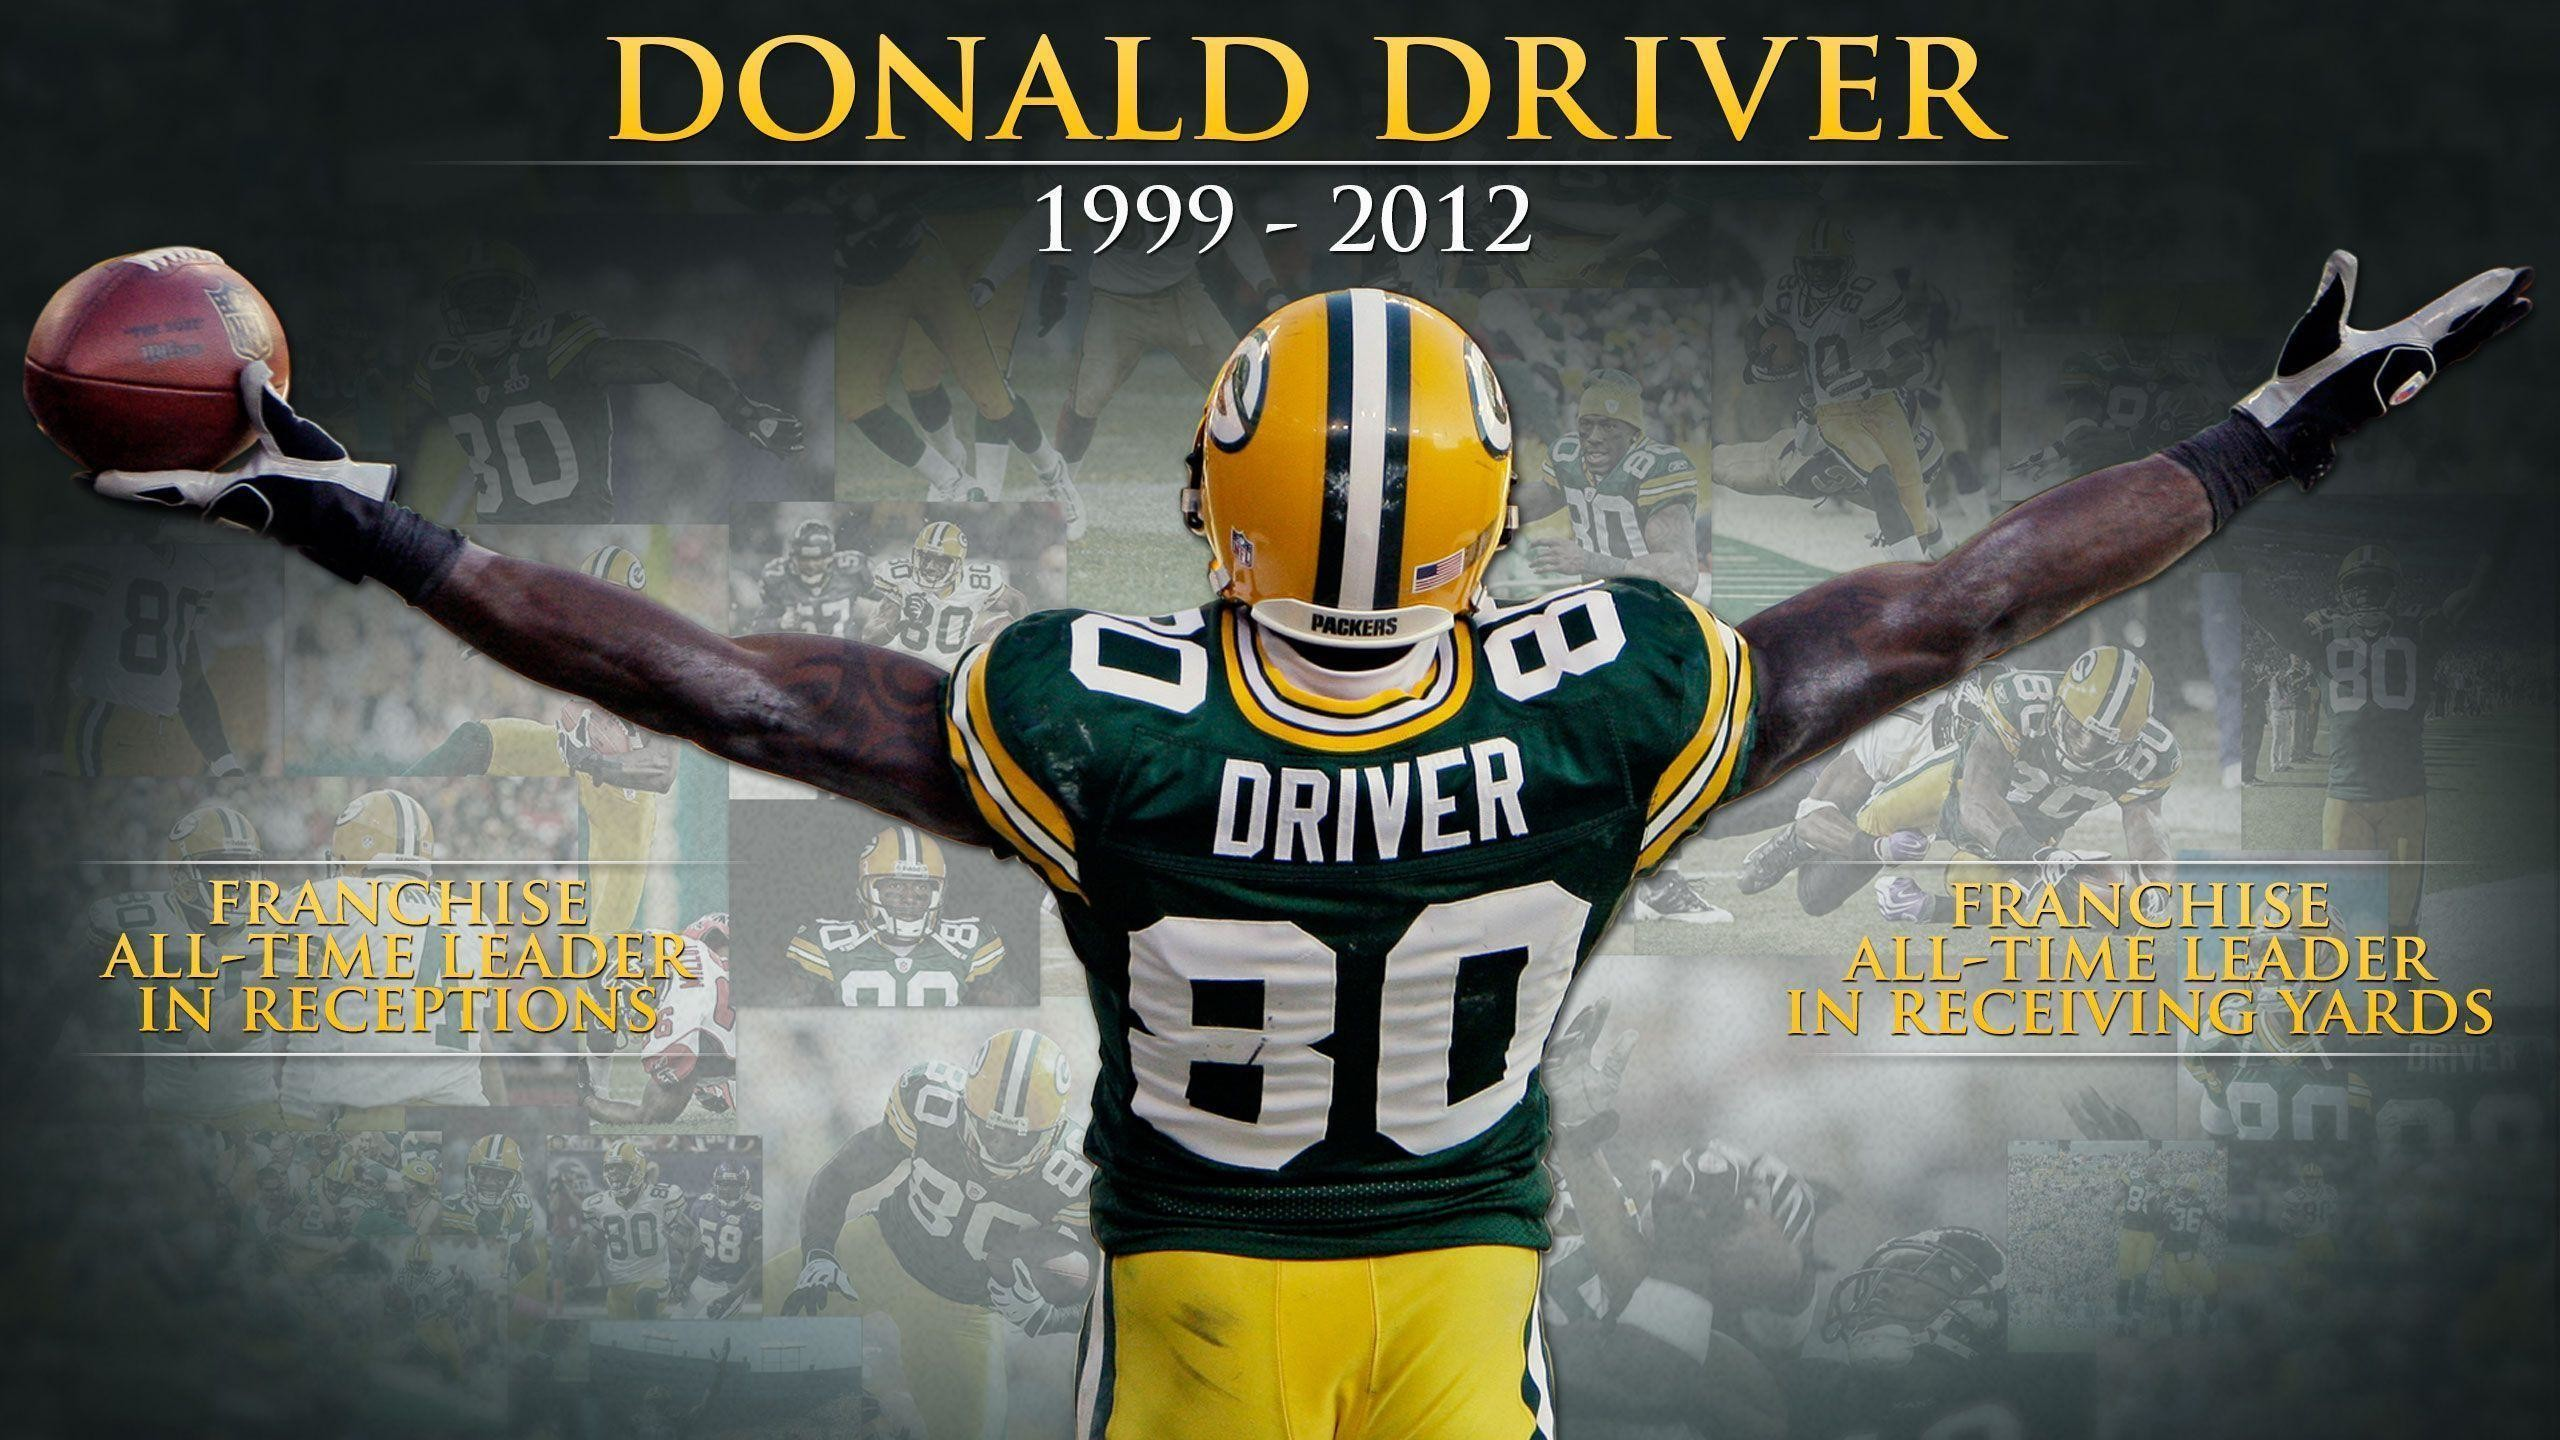 2560x1440 NFL Donald Driver Football Player Wallpaper | Download High .